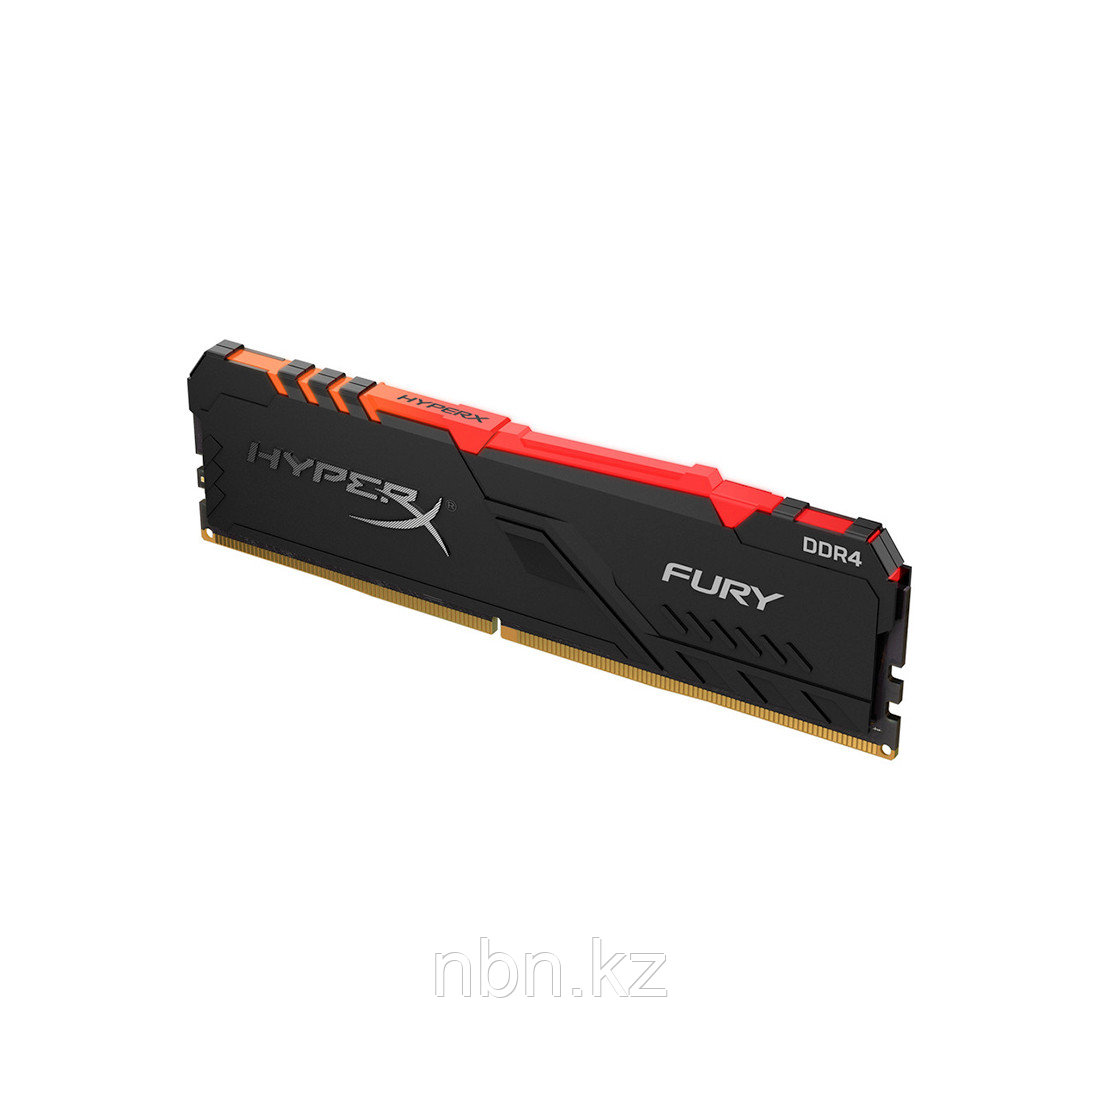 Модуль памяти Kingston HyperX Fury RGB HX430C15FB3A/8 DDR4 8G 3000MHz